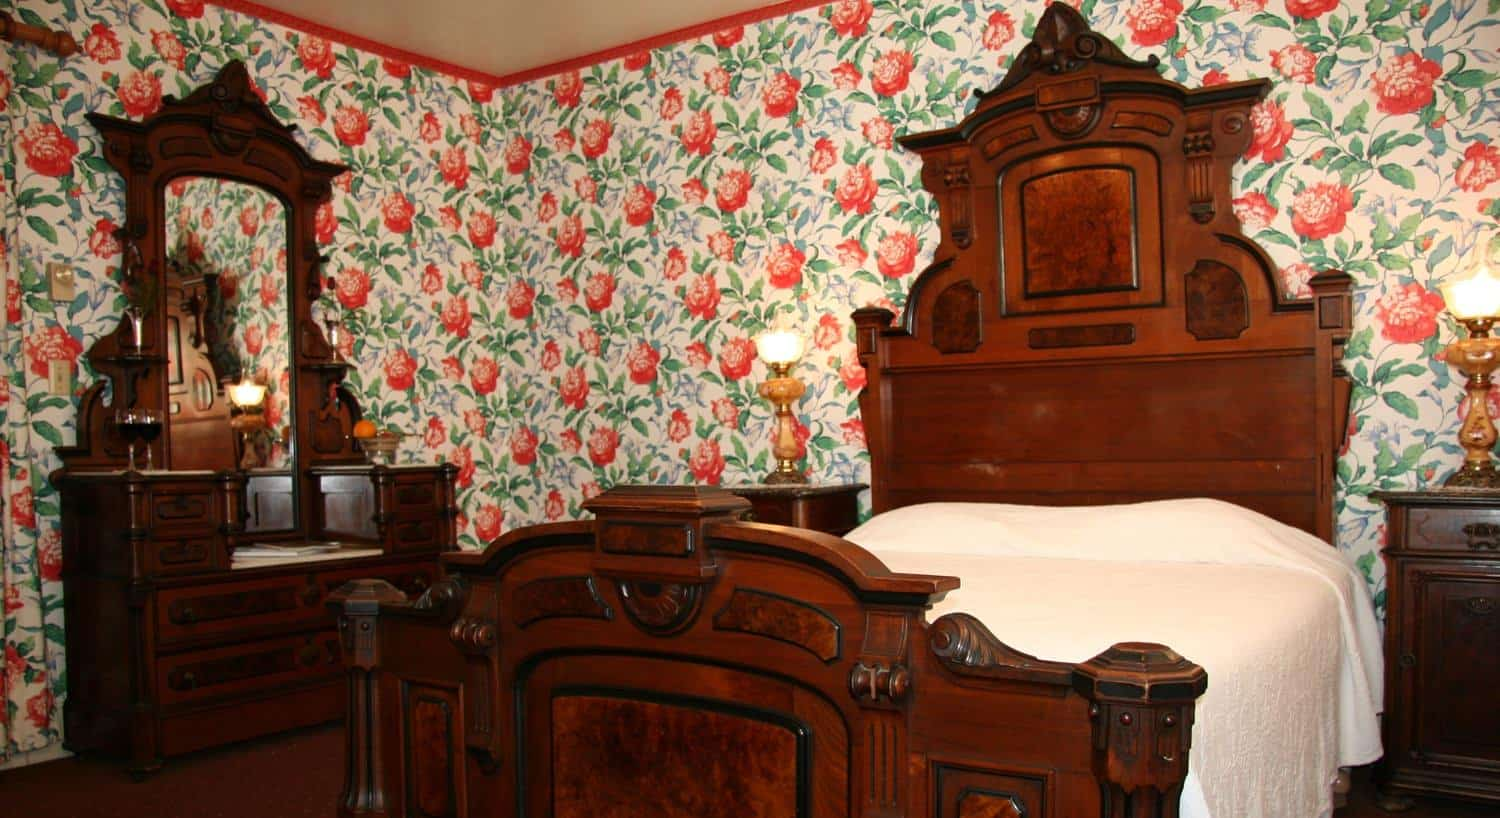 Carriage guest room with carved wood bed, tall headboard, two nightstands, red and green floral walls and vanity dresser